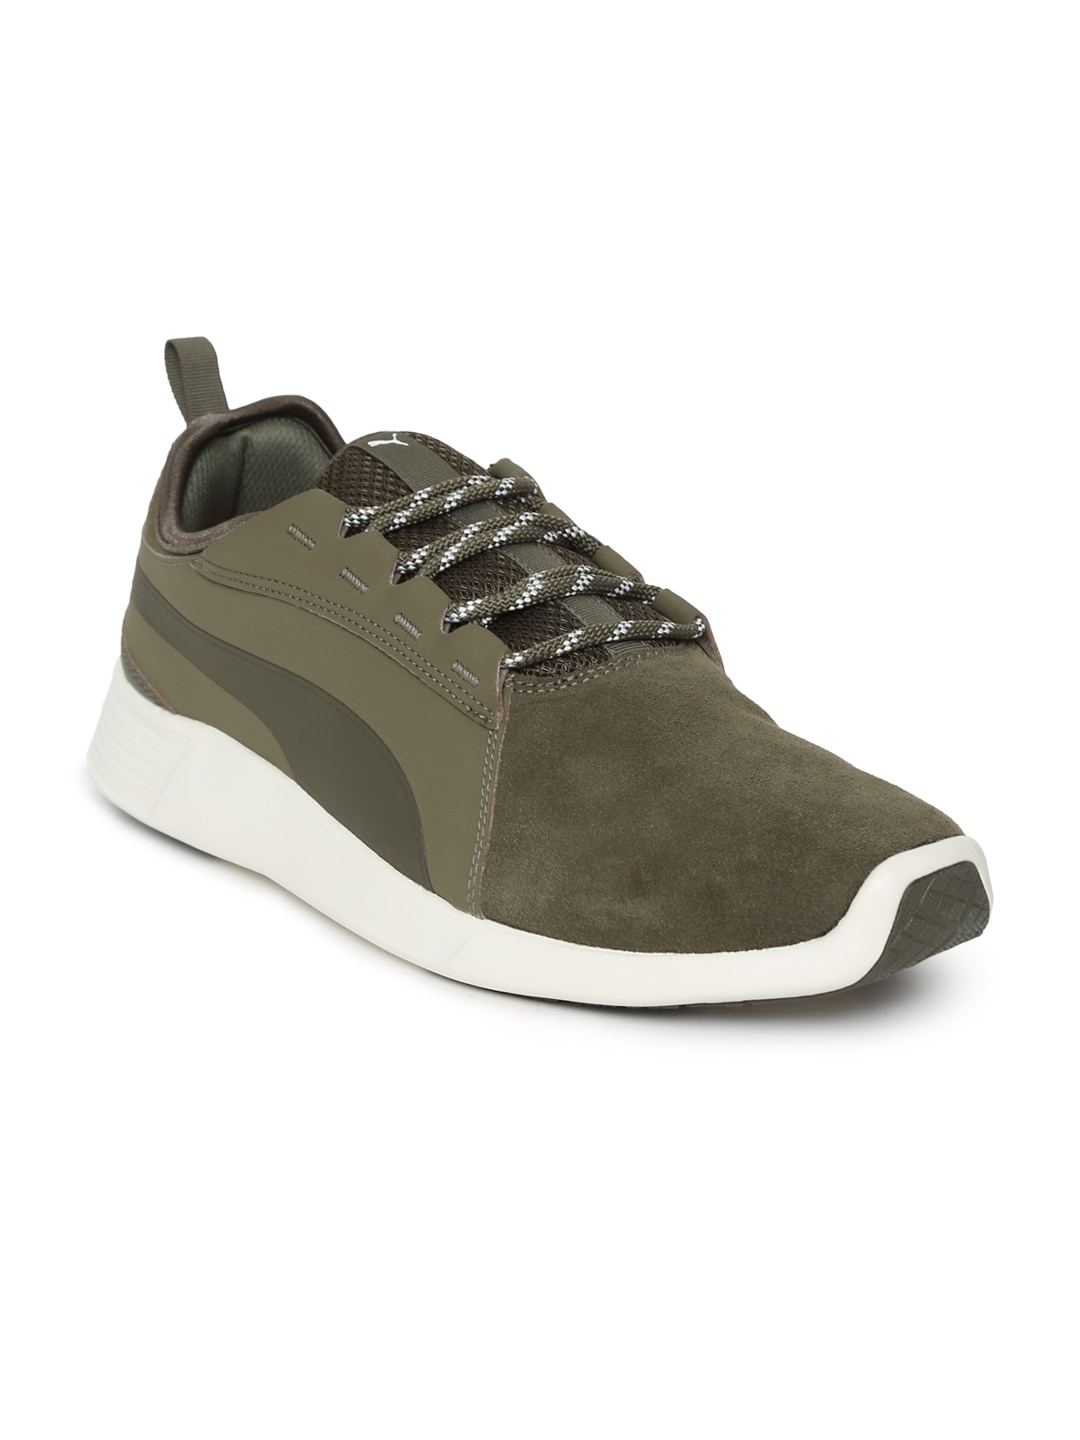 e59307e3333d Puma Shoes - Buy Puma Shoes for Men   Women Online in India